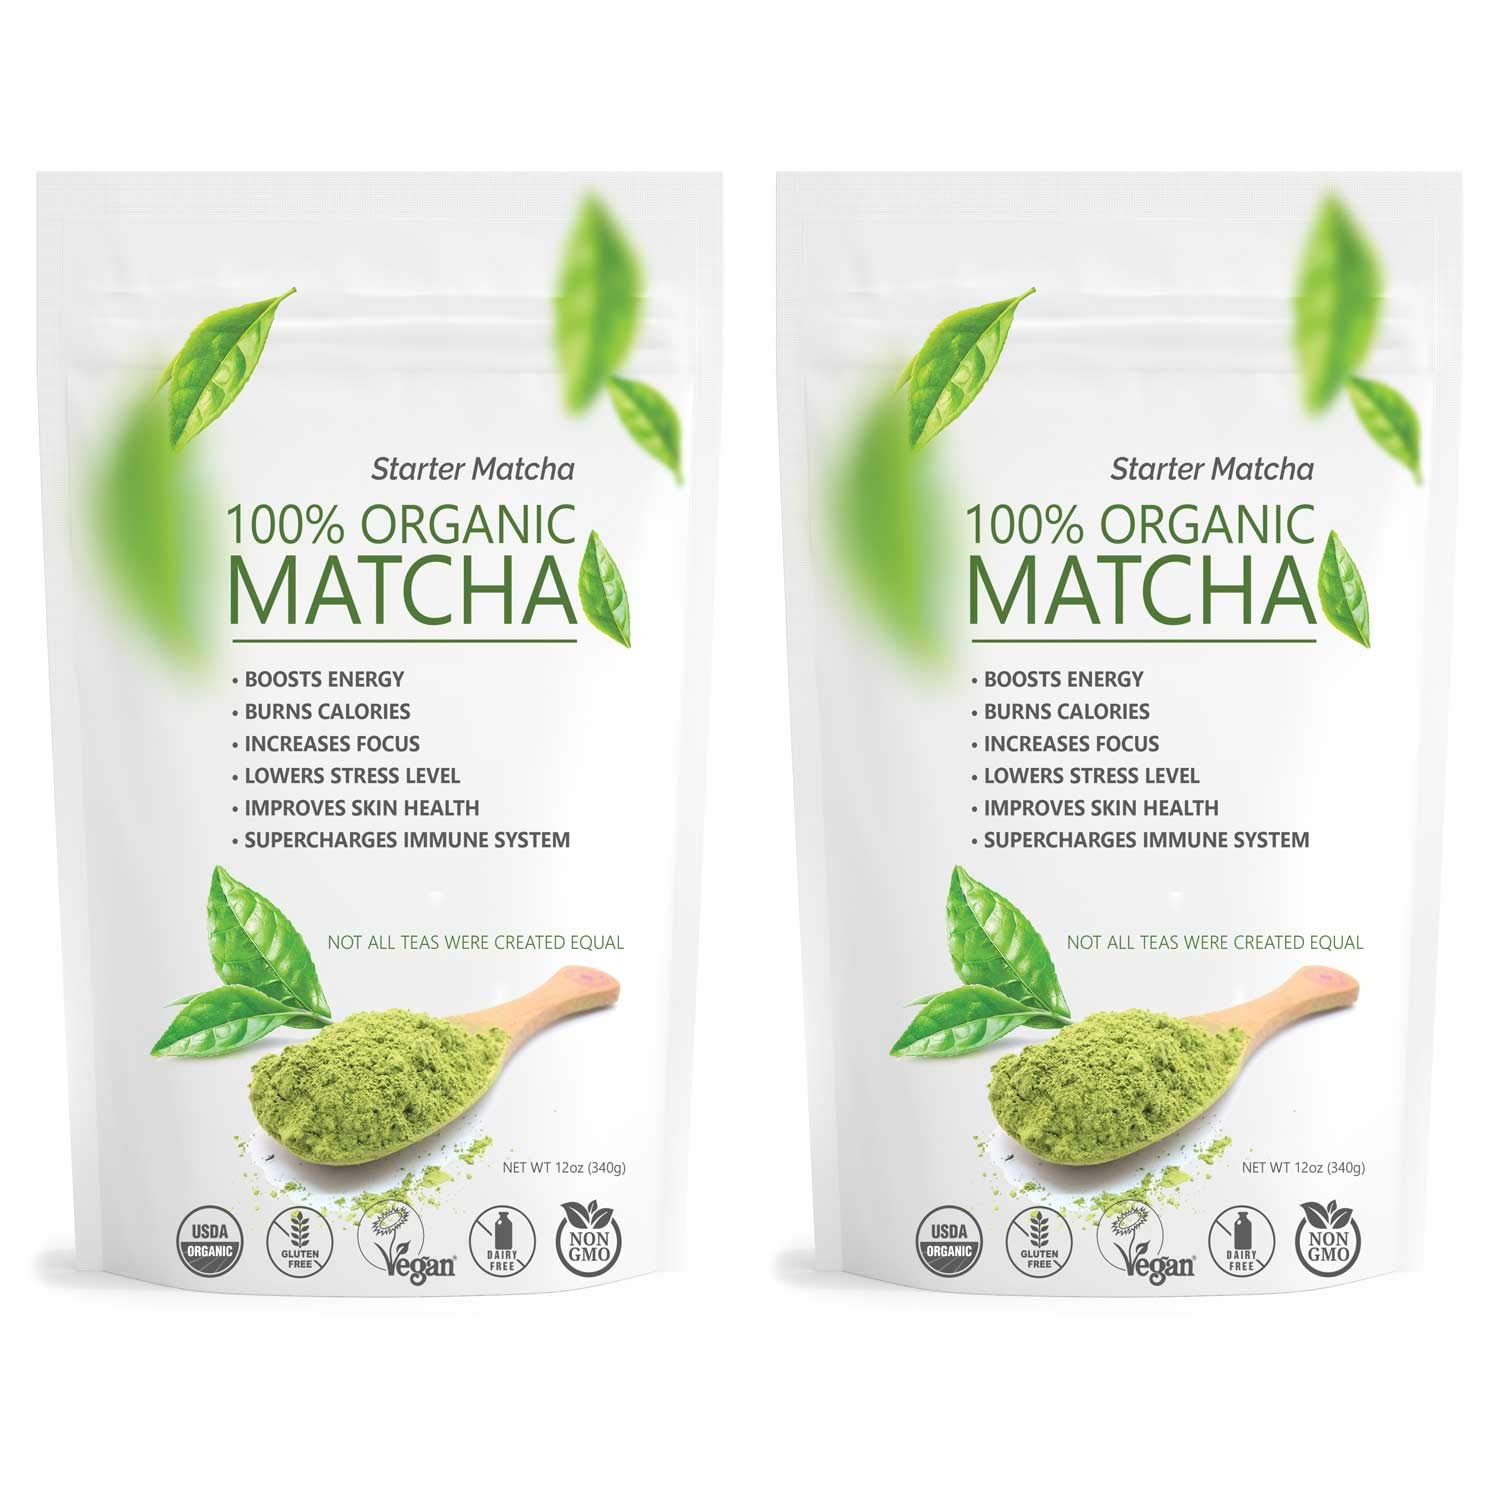 Starter Matcha Set | 2x 12oz | USDA Organic | Non-GMO Certified | Vegan and Gluten-Free | Pure Matcha Green Tea Powder | Grassy Flavor | Mild Natural Bitterness | Autumn-Green color | Matcha Outlet by Matchaccino